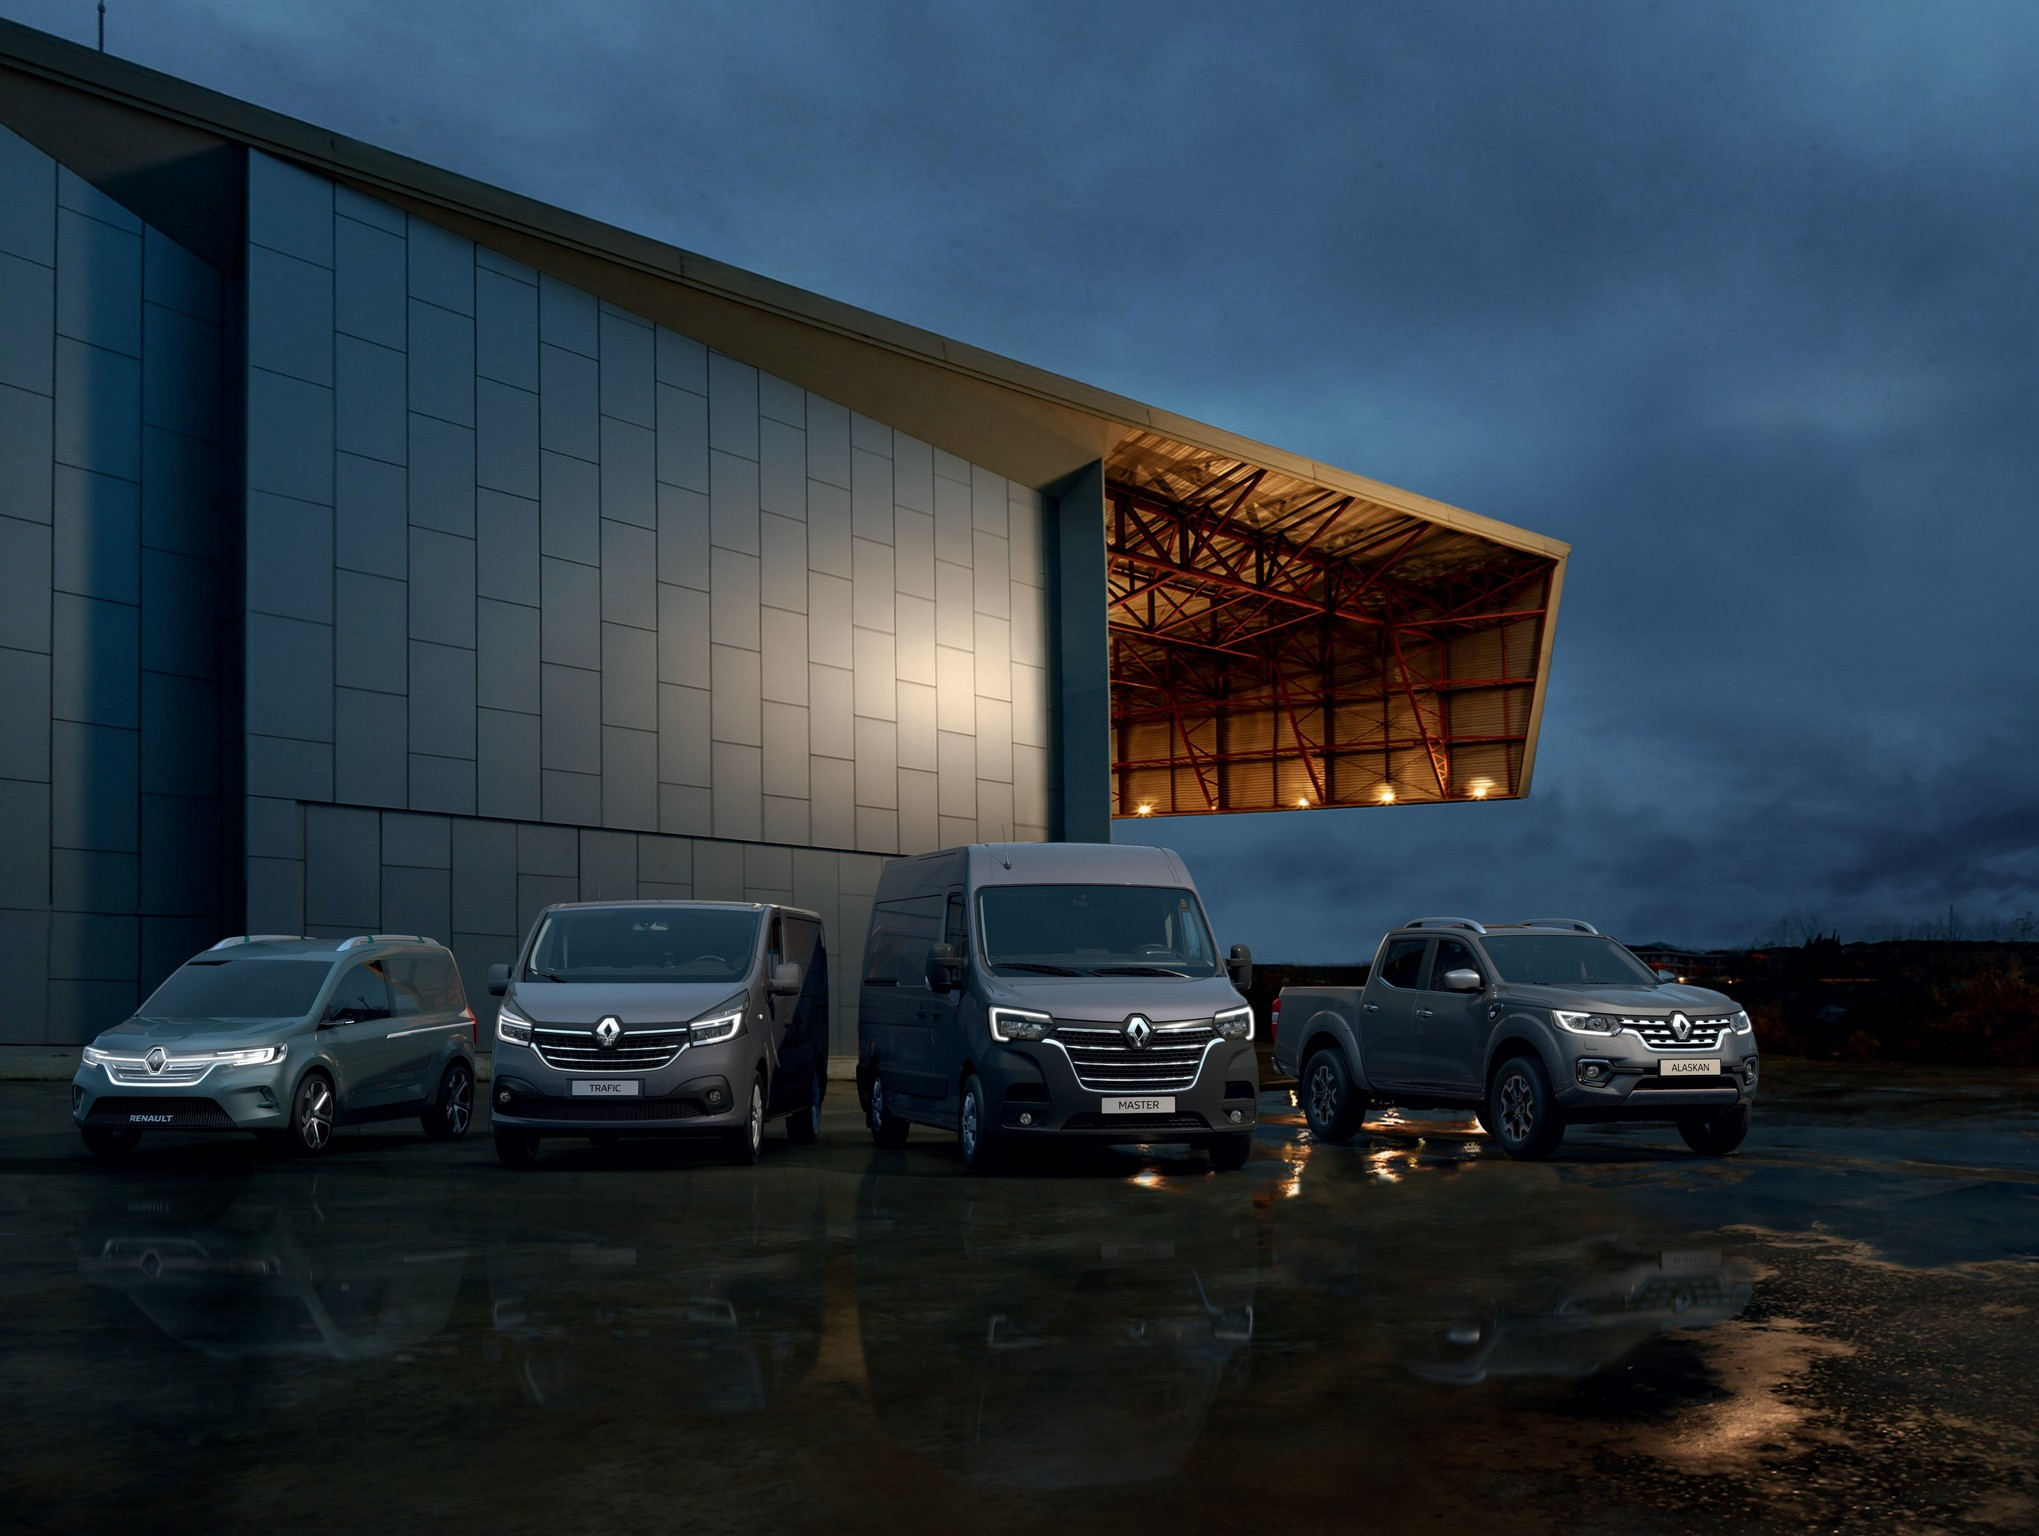 21224893_2019_-_Renault_Light_Commercial_Vehicles_Range